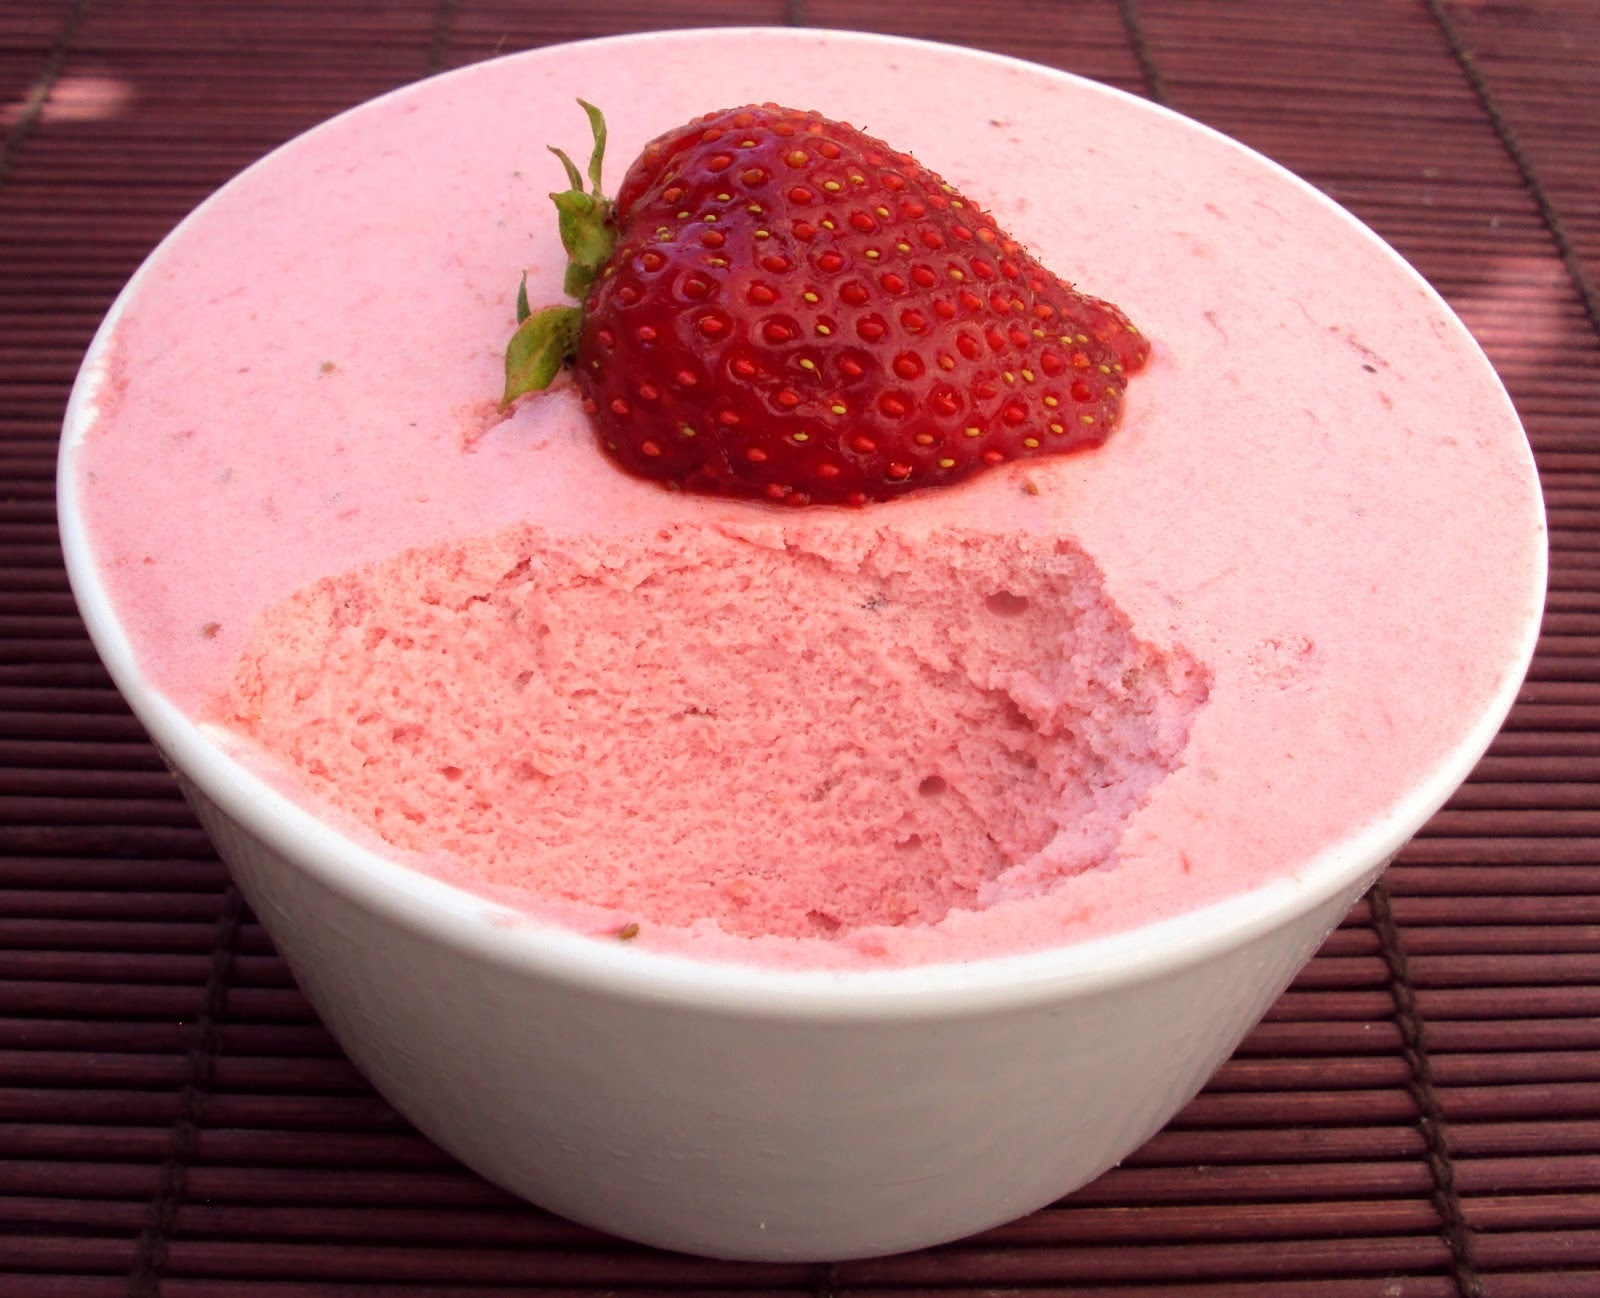 Mousse de morango light, diet e protéico